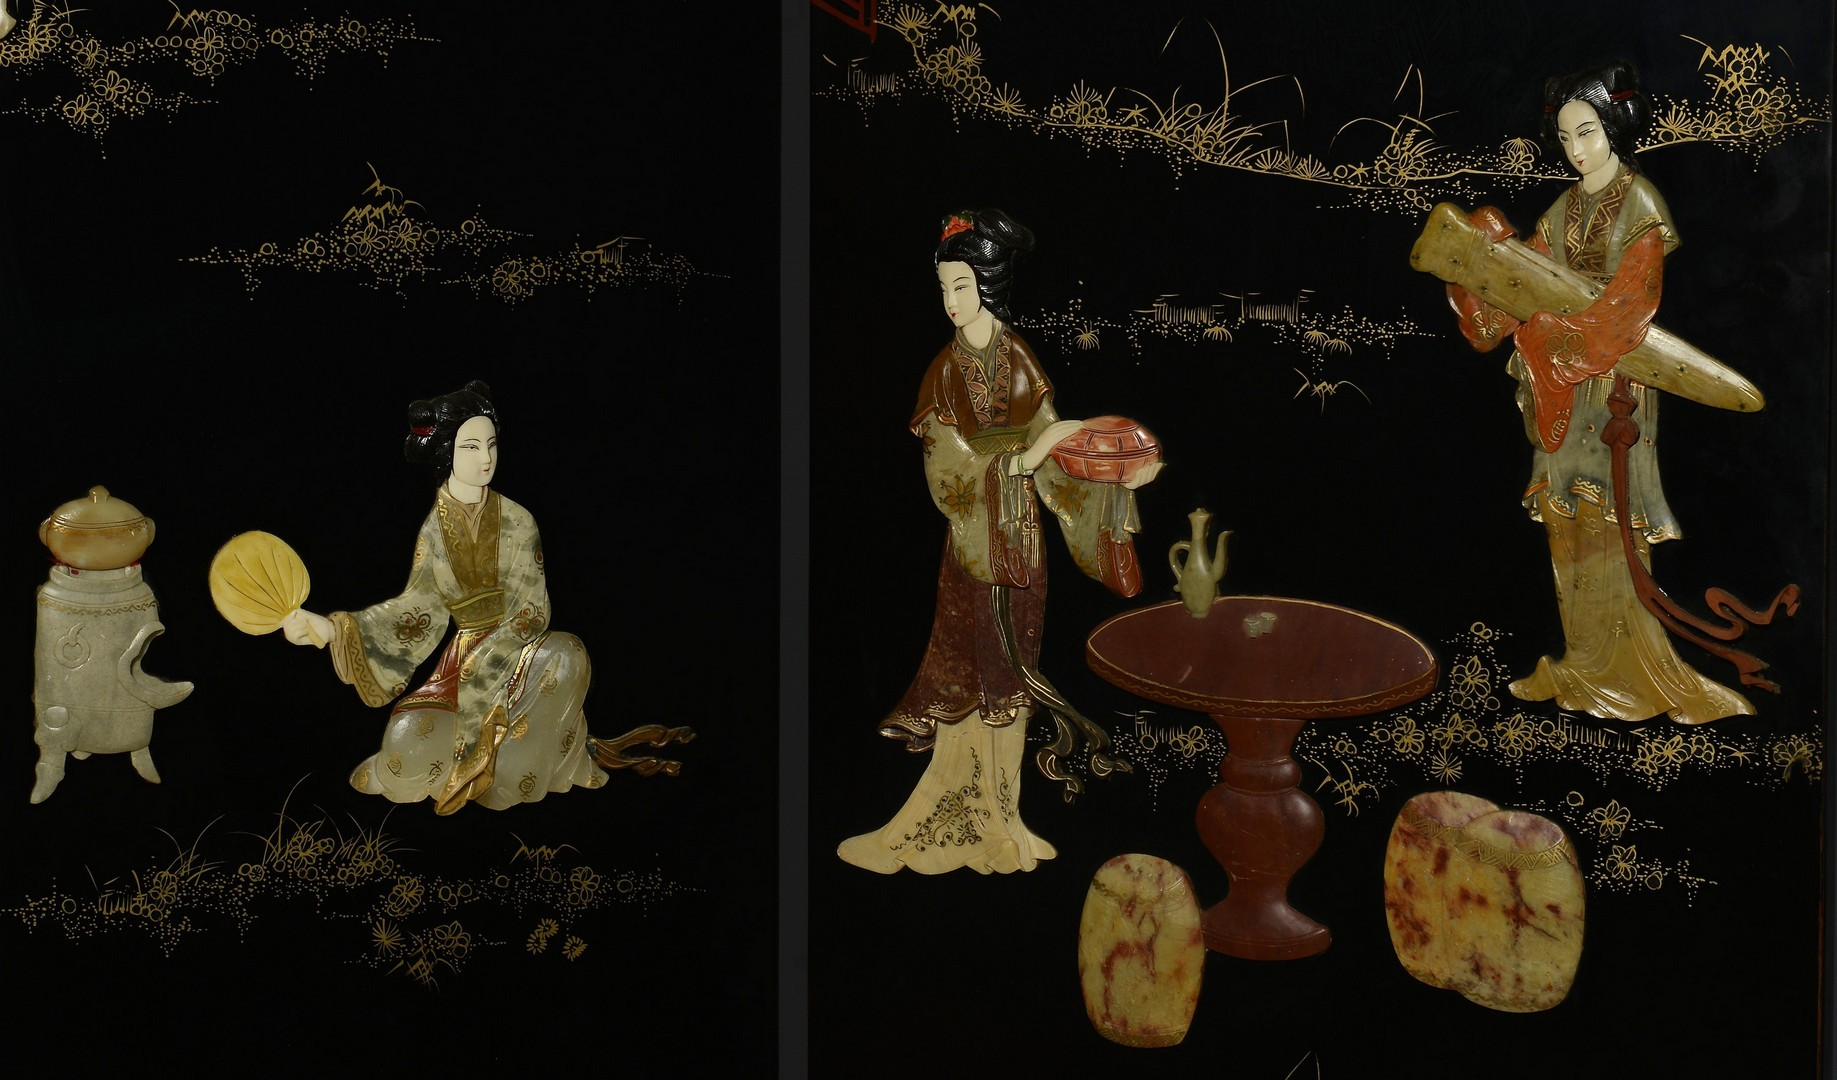 Lot 3383216: Asian Lacquer and Hardstone Screen